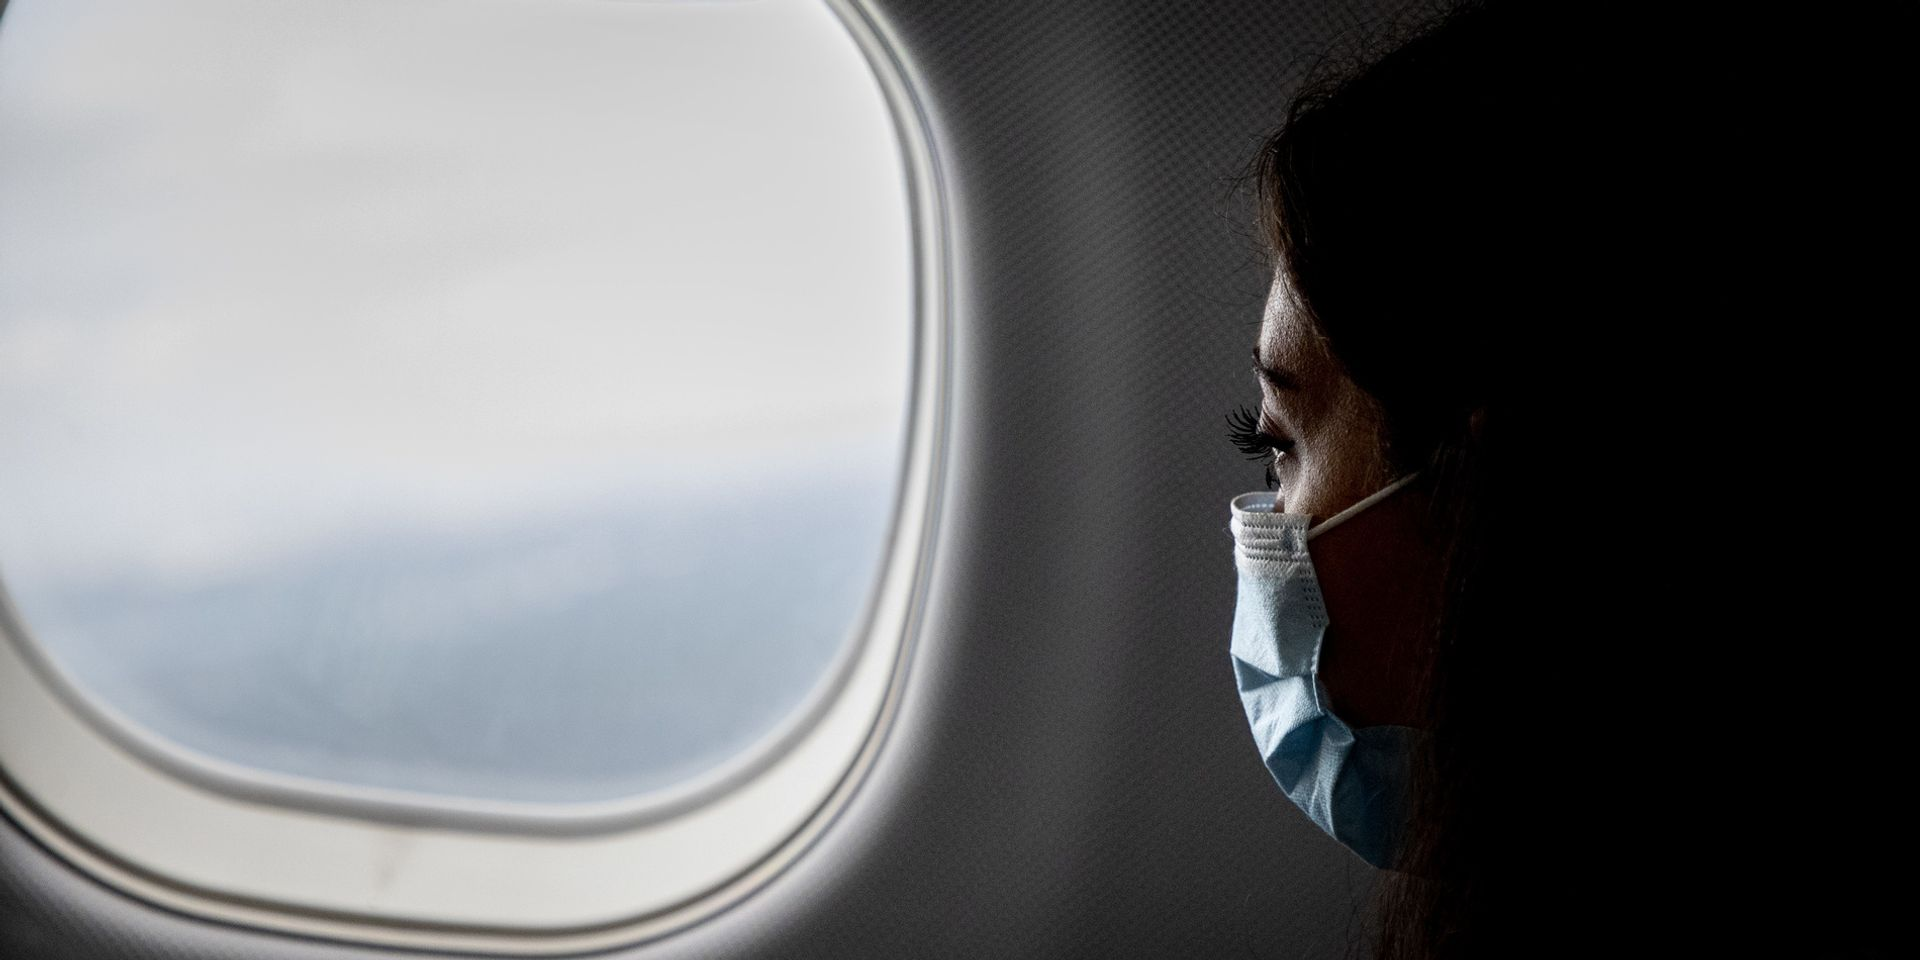 A woman with a face mask is looking out the airplane window.